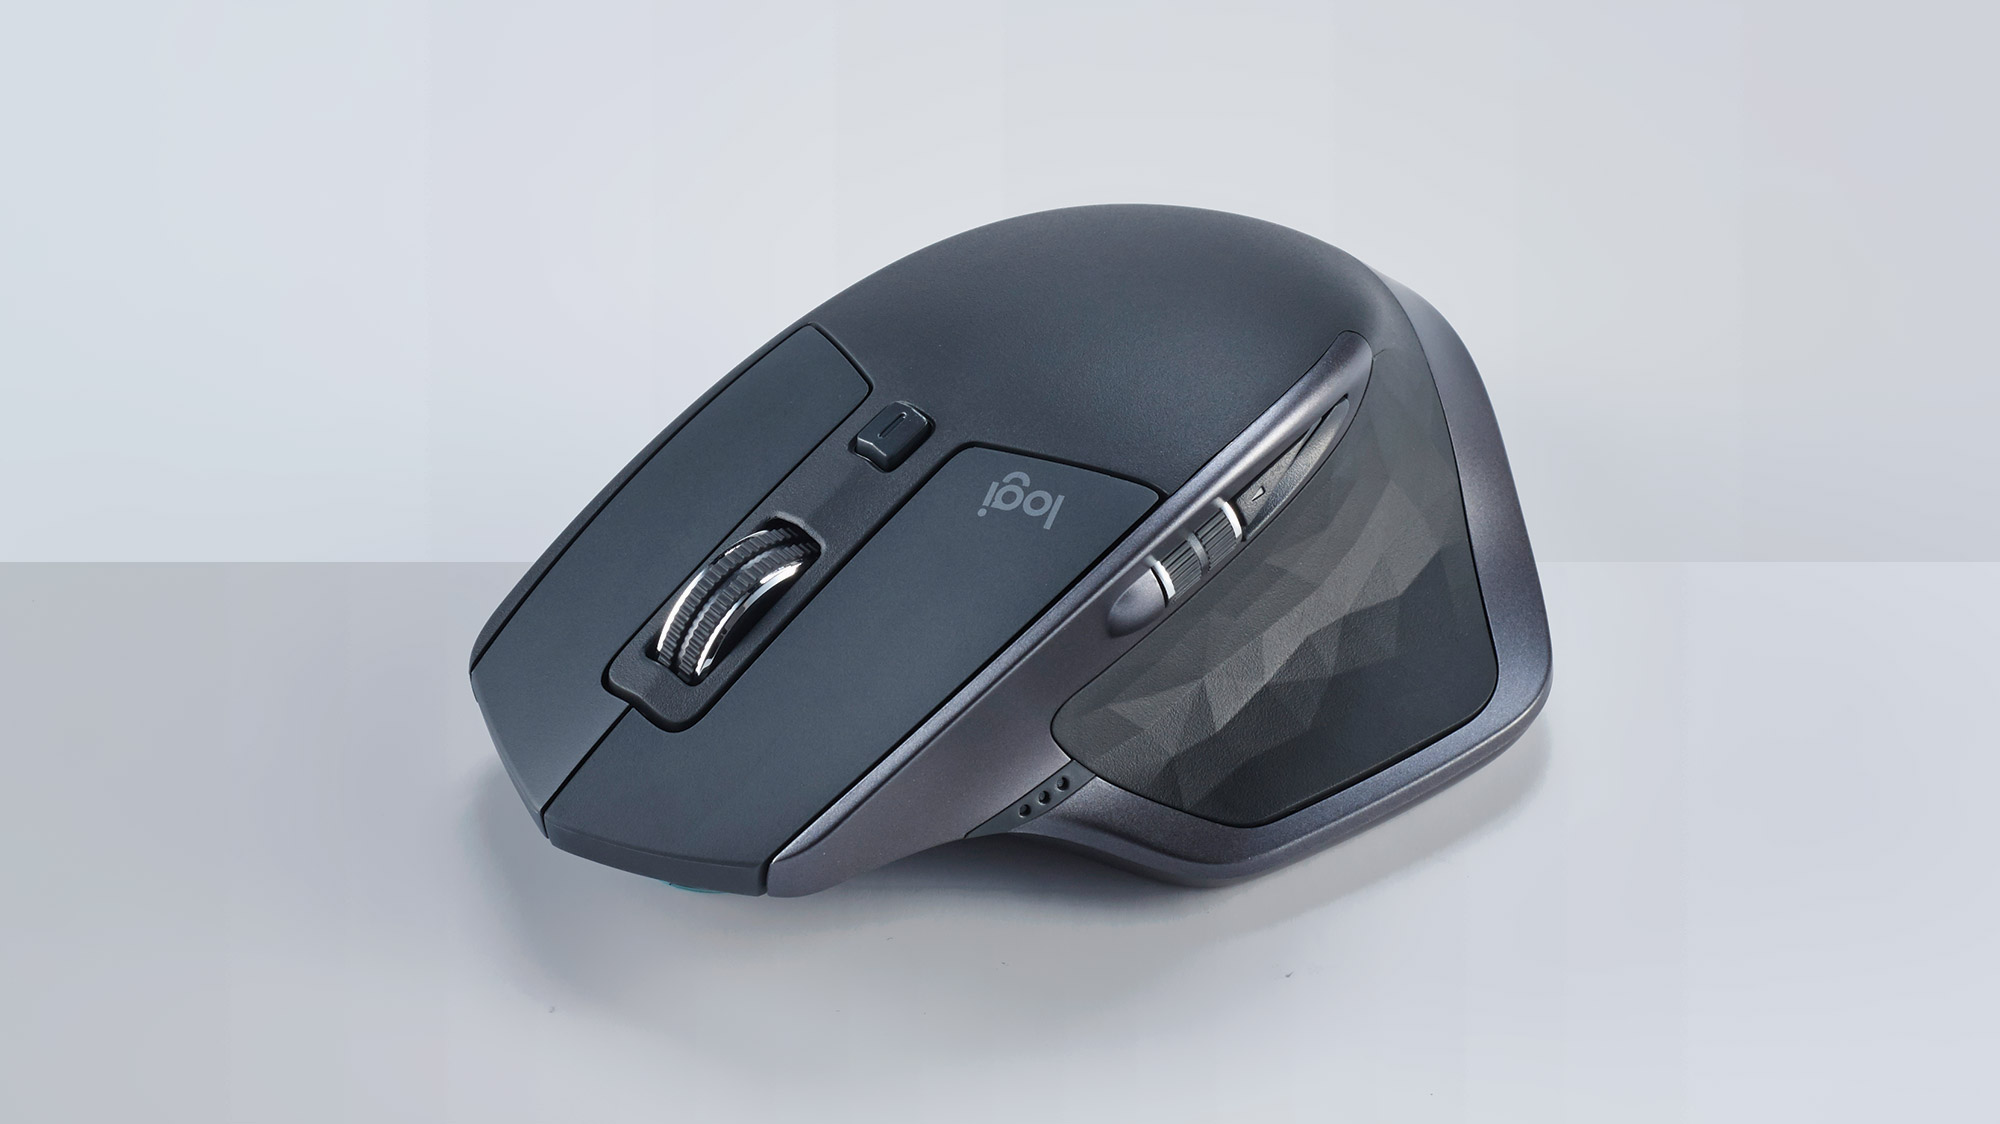 Best Wireless Mouse 2020.Best Mouse 2020 The Best Mice For Work And Play Techradar